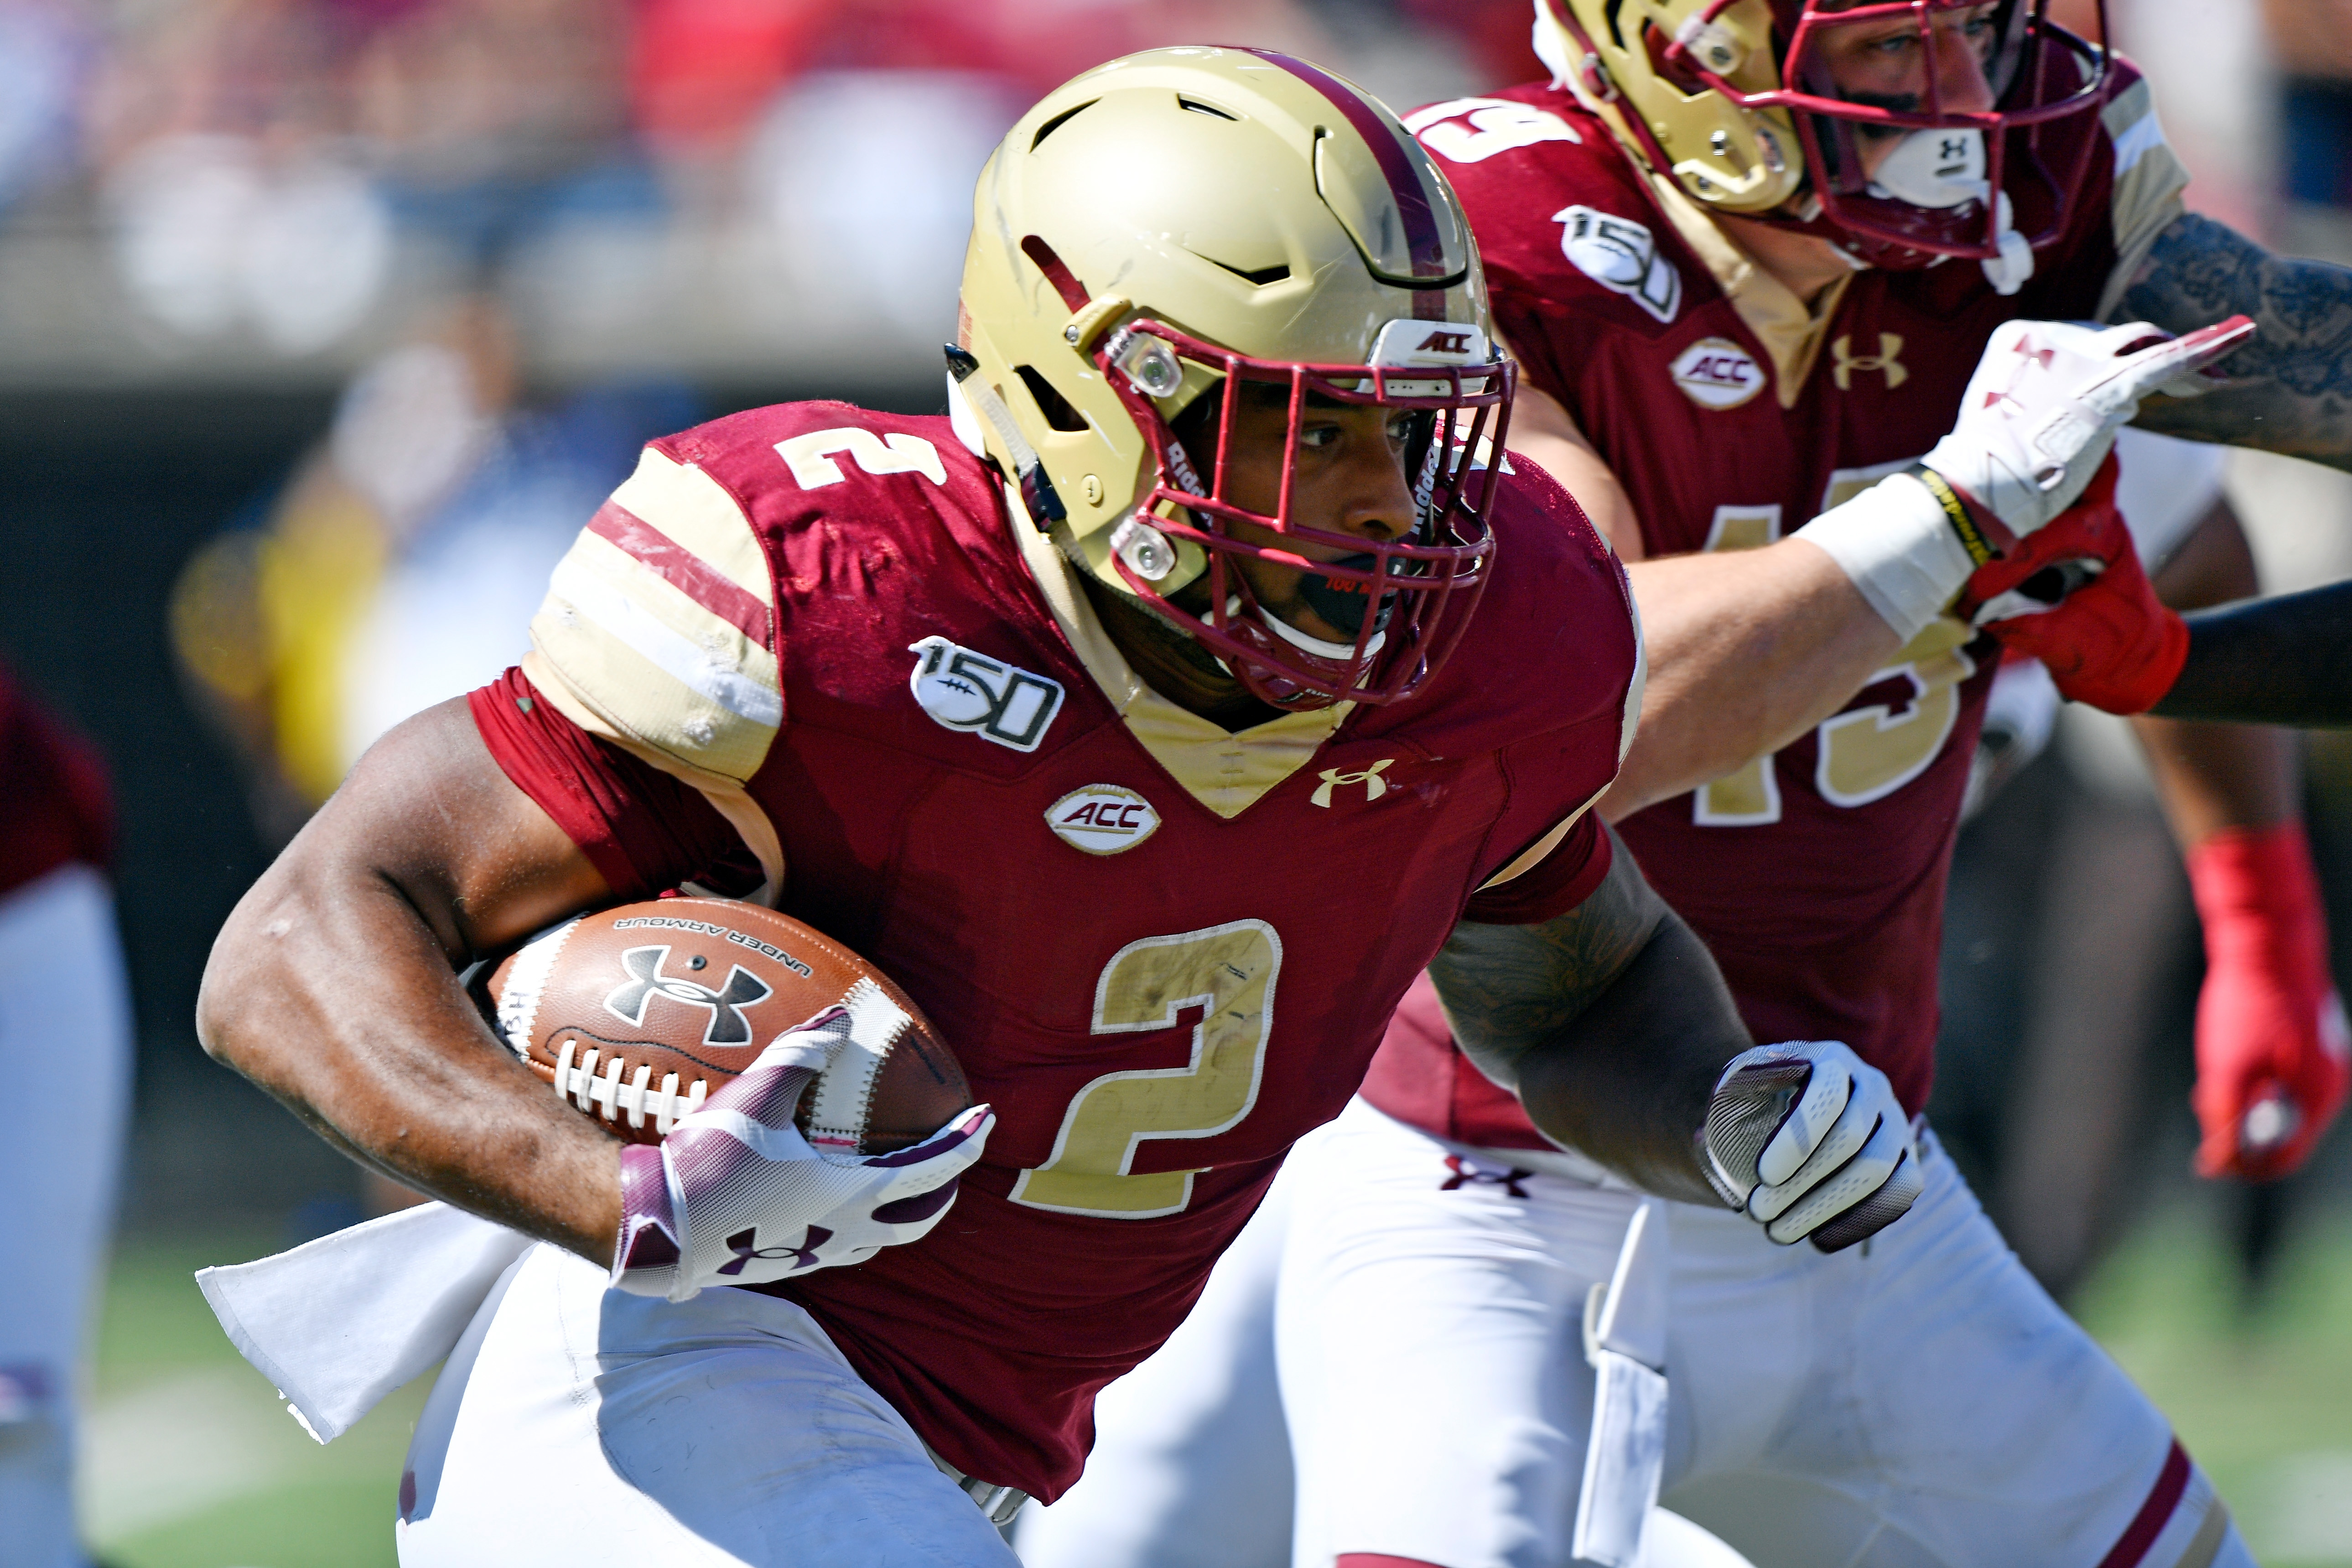 24-hour rule: Next up, Boston College